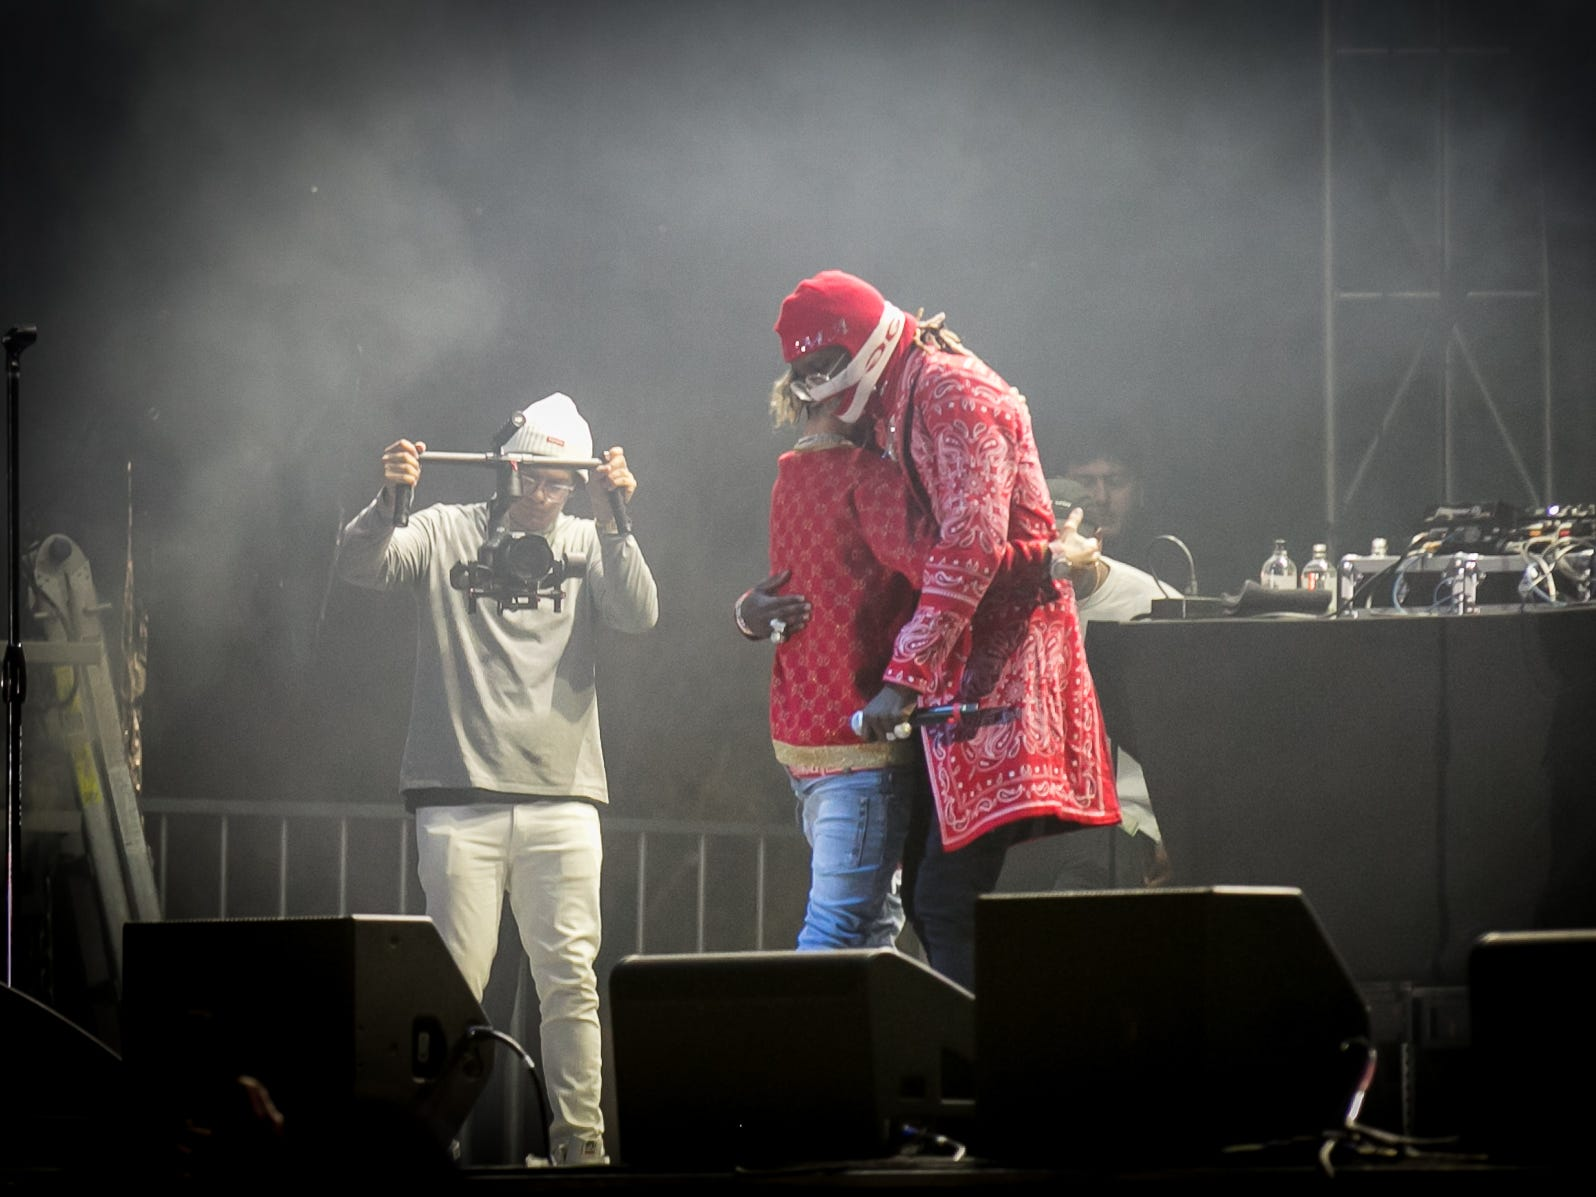 Young Thug brought Lil Pump onstage during Pot of Gold Music Festival on Sunday, March 17, 2019.